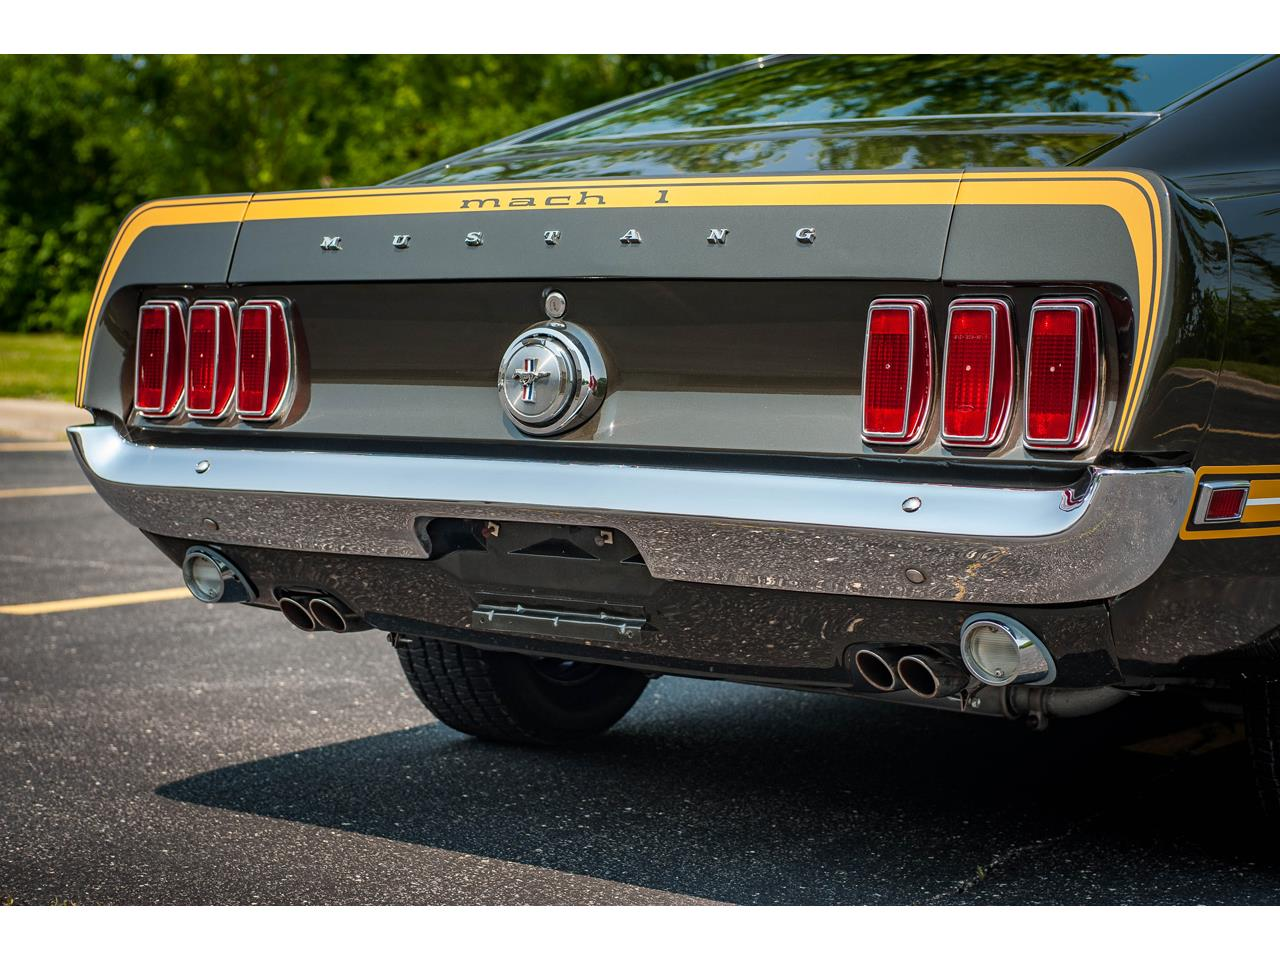 Large Picture of Classic 1969 Ford Mustang - $97,500.00 Offered by Gateway Classic Cars - St. Louis - QBA2